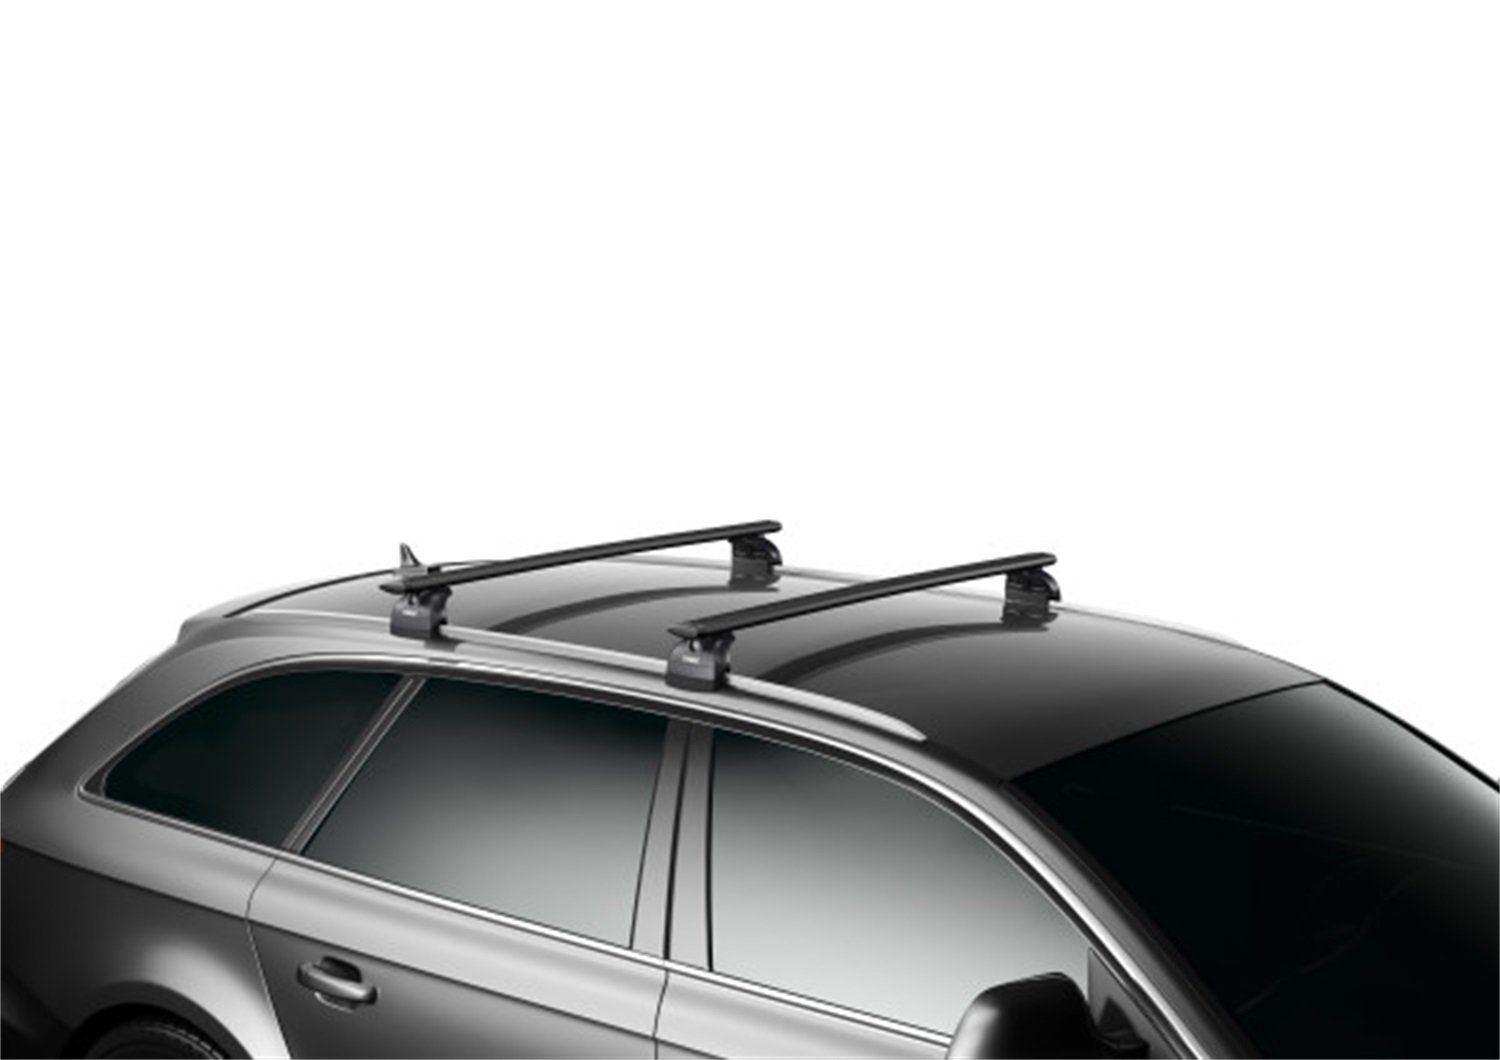 Thule Aeroblade Edge Review Roof rack, Car, Bike rack